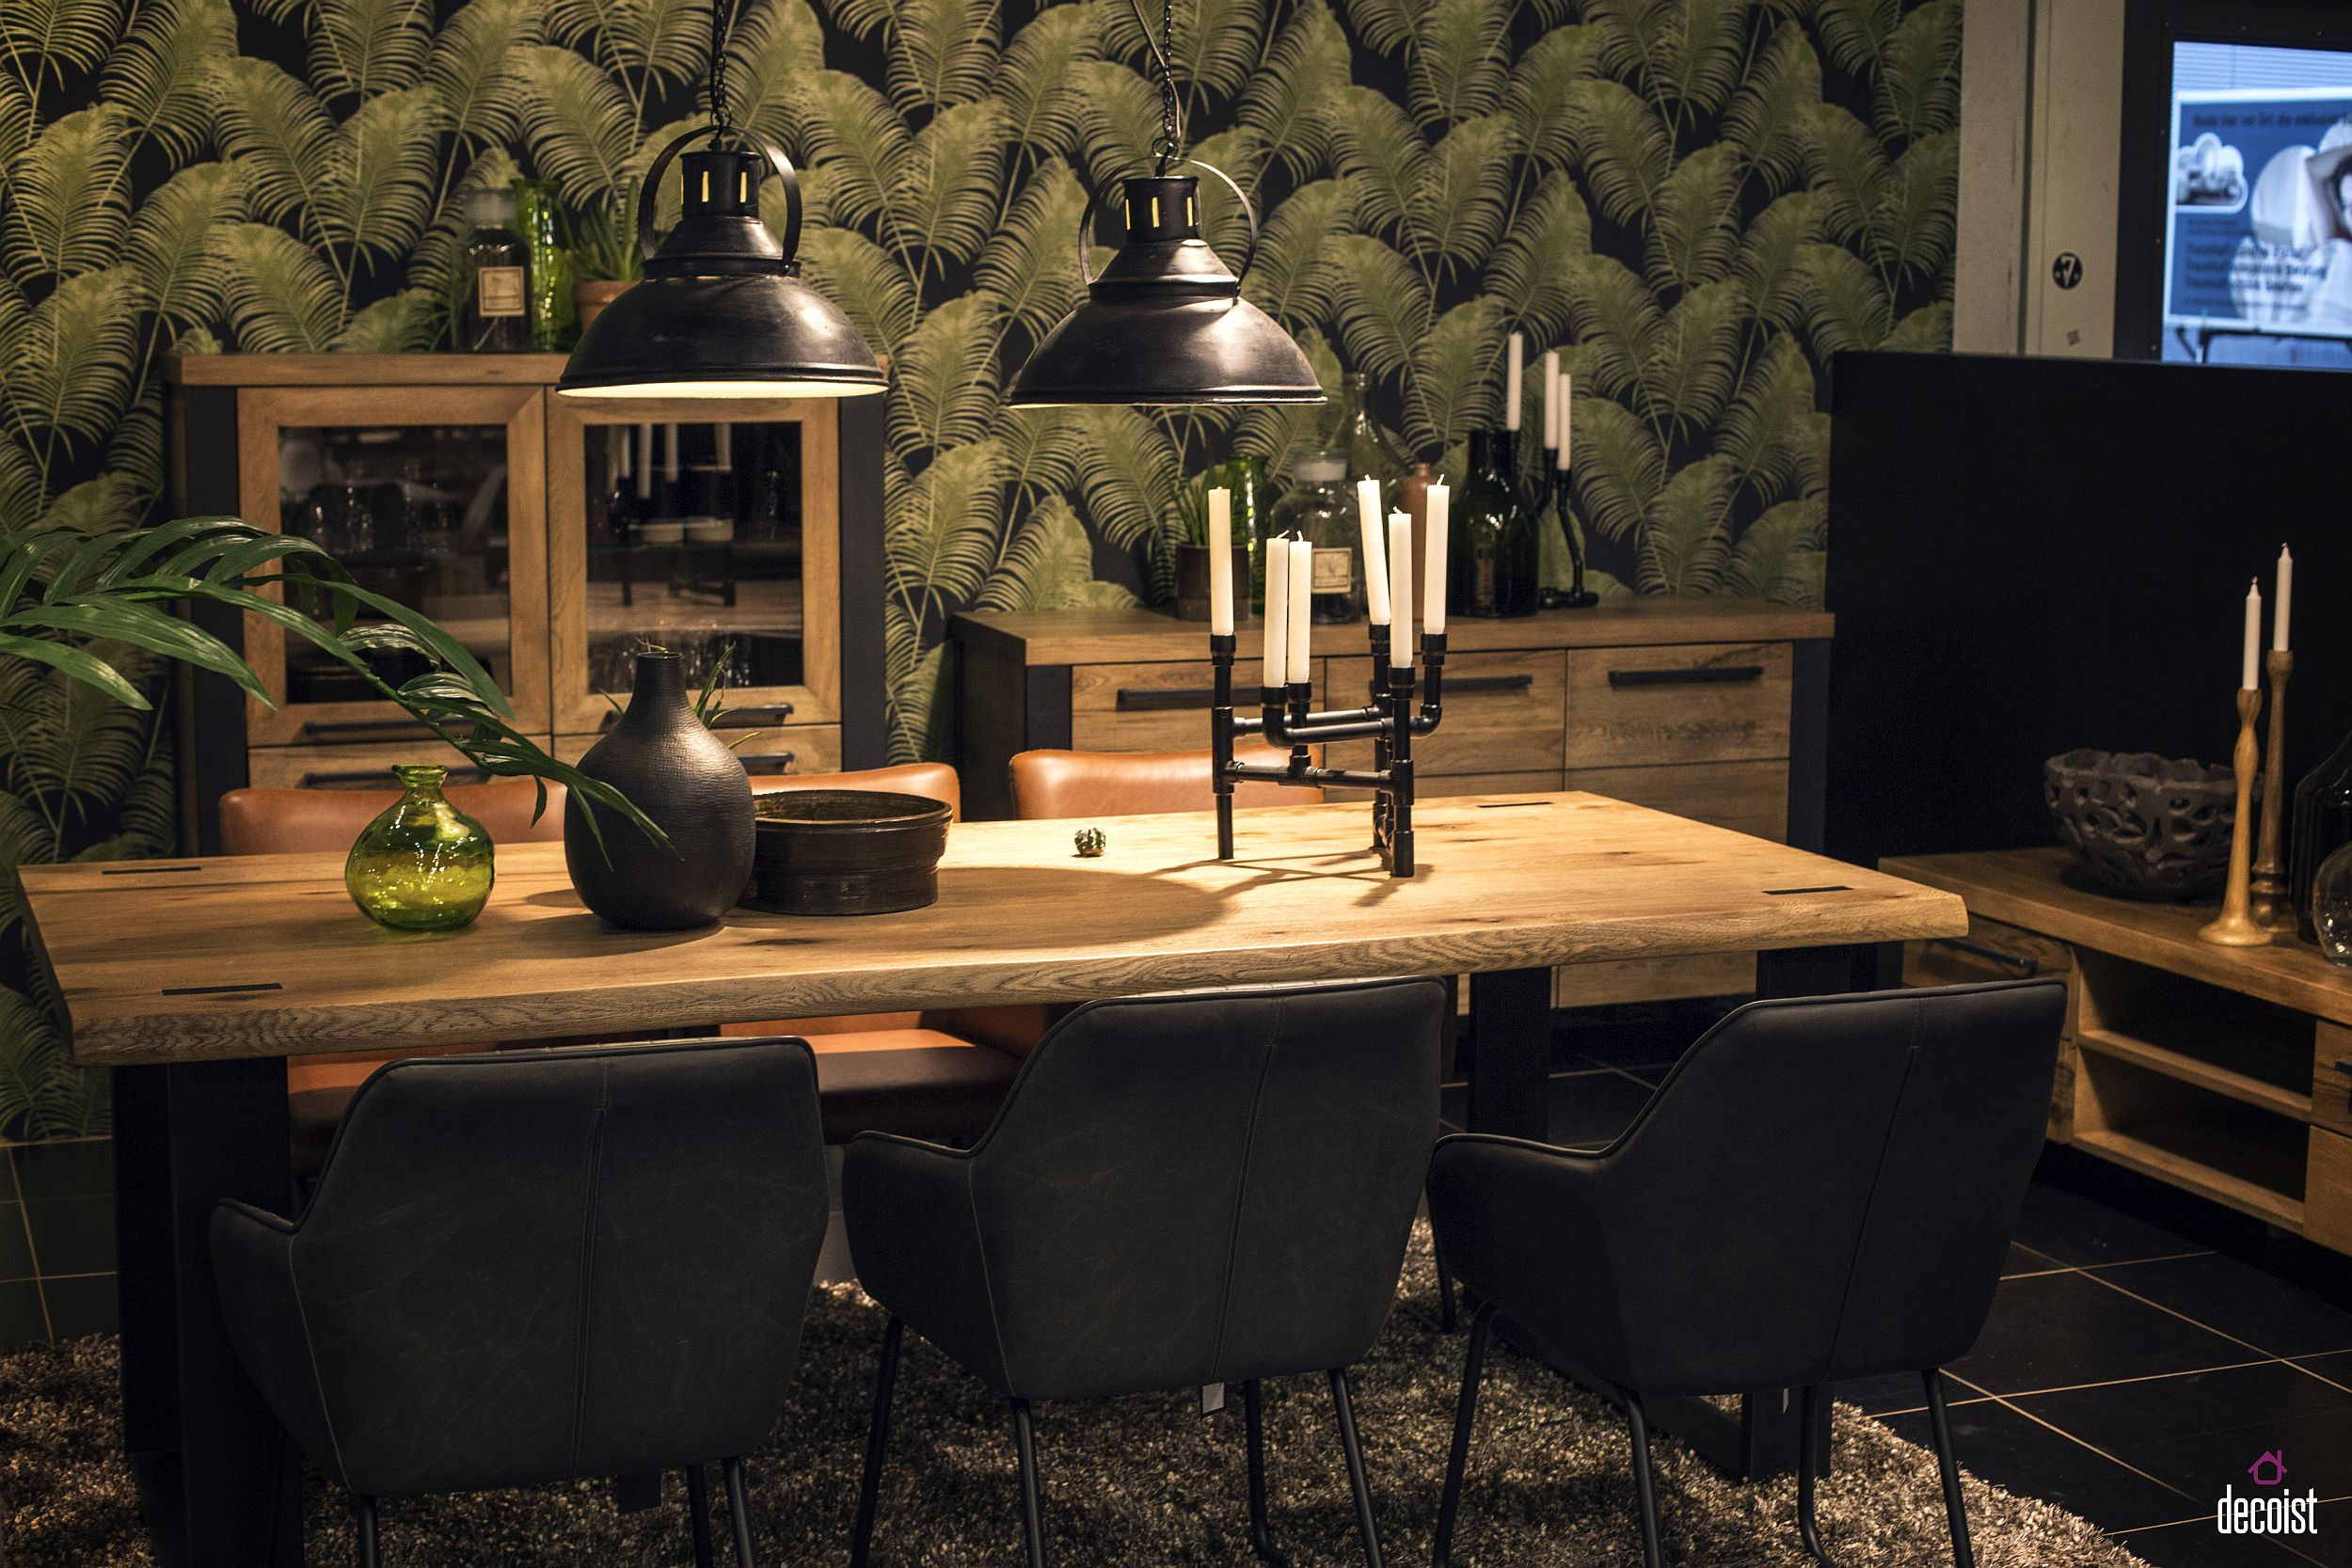 Wallpaper and pendants bring exclusivity to the dining table setting by UNIQUE